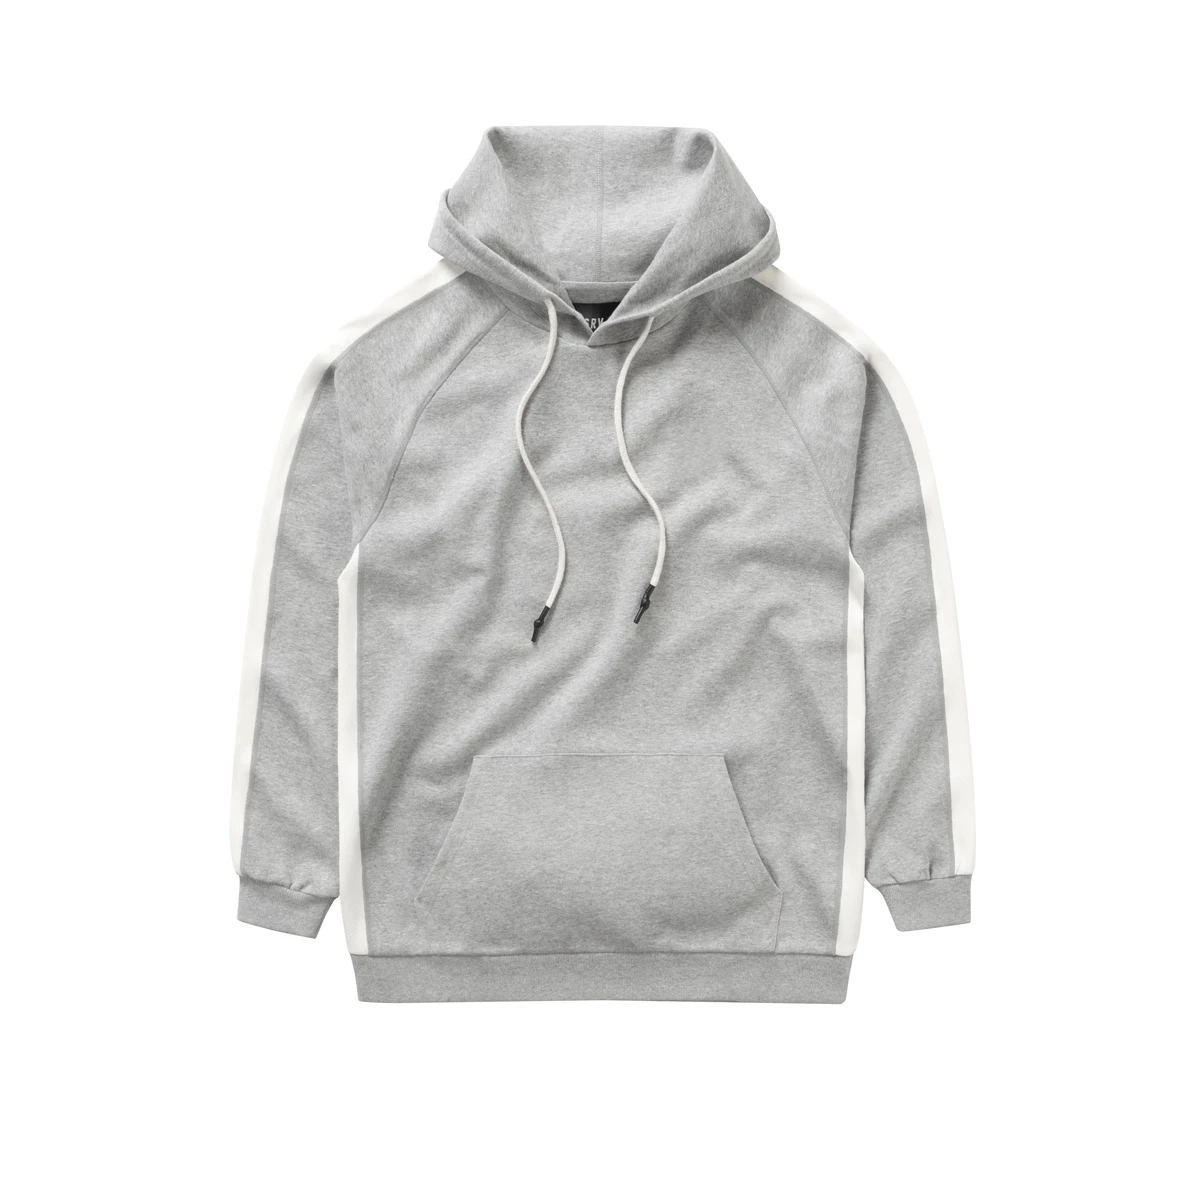 TopShow Wholesale trendy mens hoodies for cosmetics